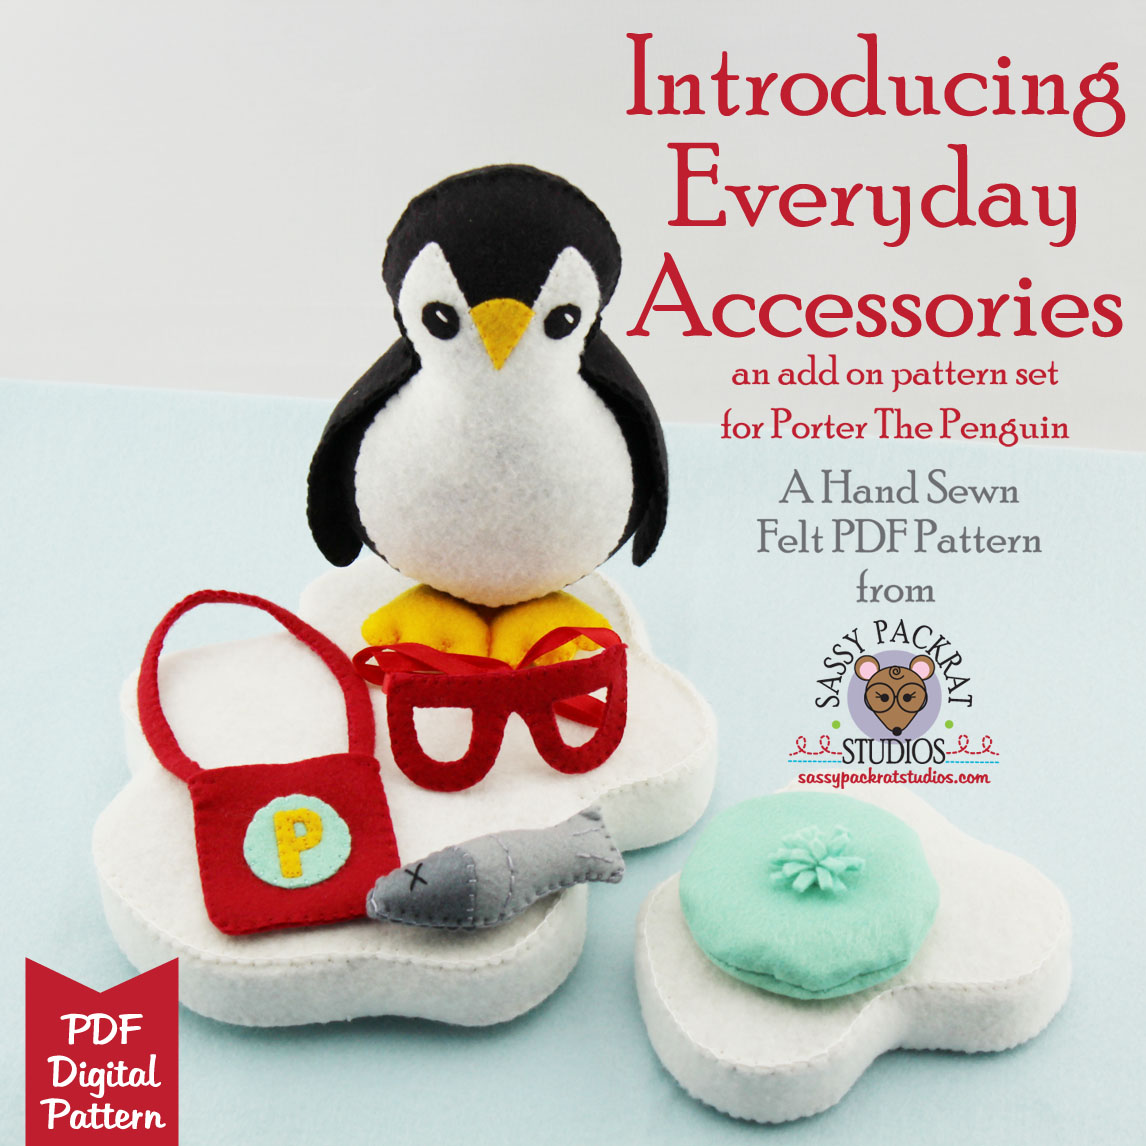 Everyday Accessories Pattern Set